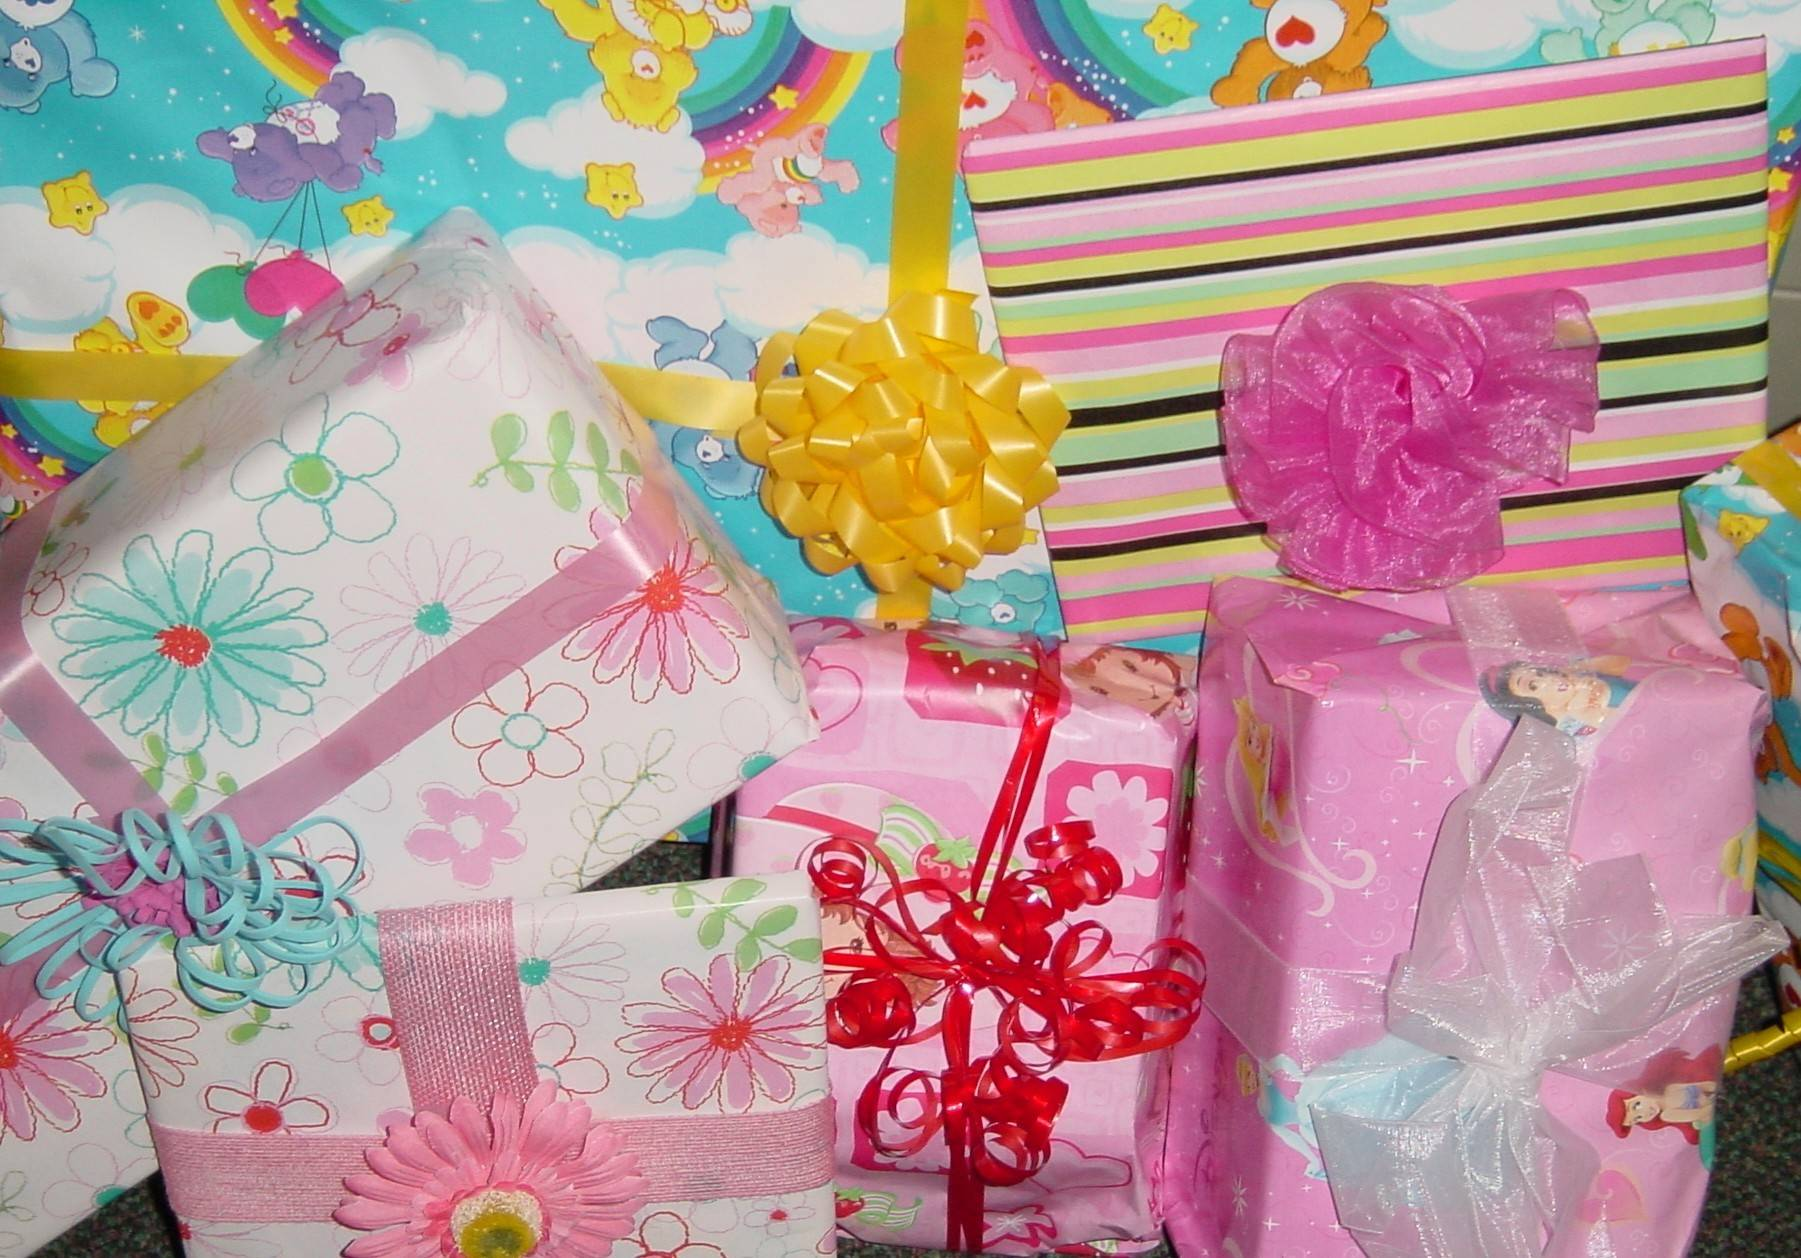 Gifts wrapped for the needy children served by HSP's Children's Birthday Project